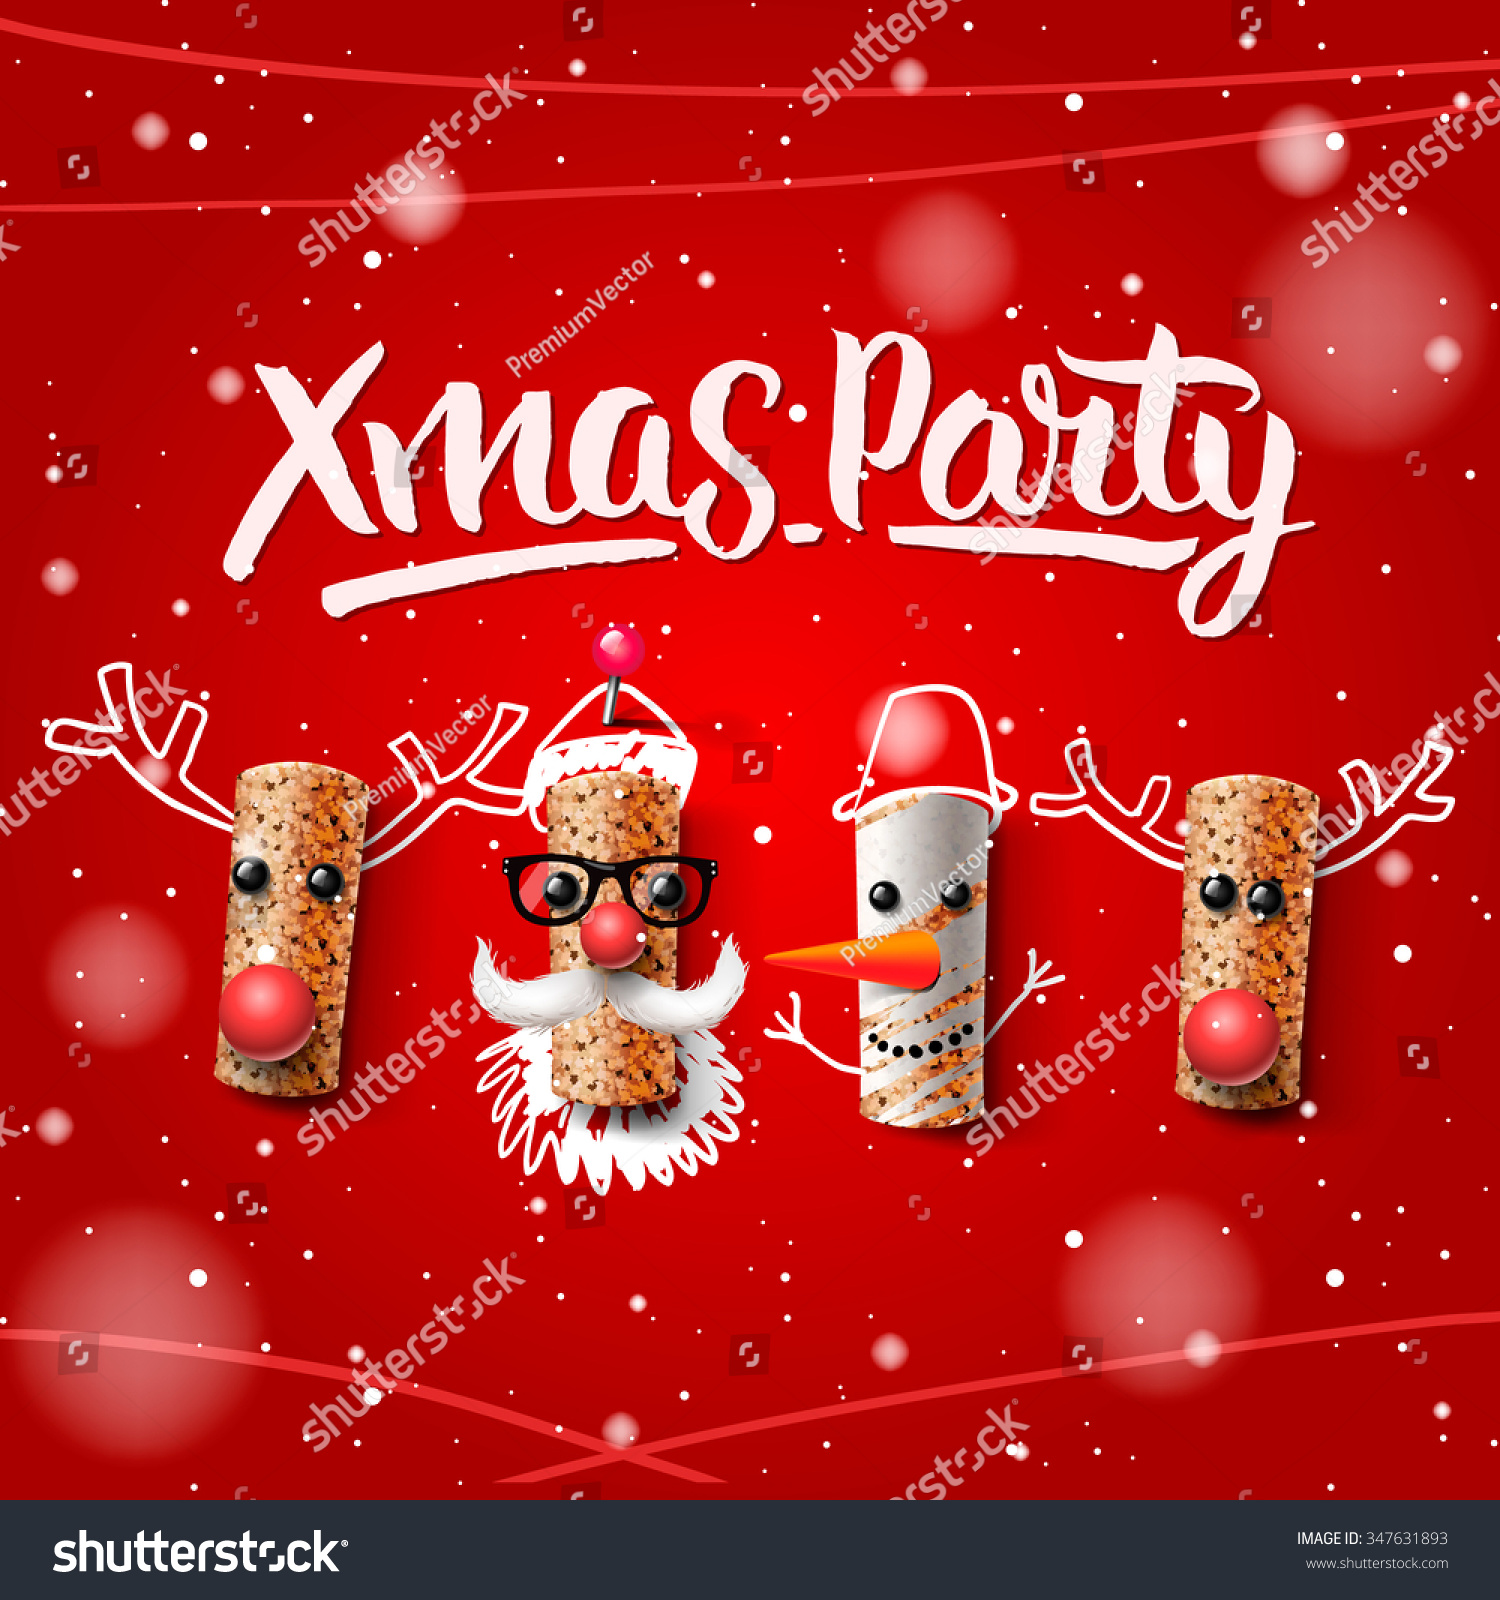 xmas party template christmas characters santa claus snowman save to a lightbox